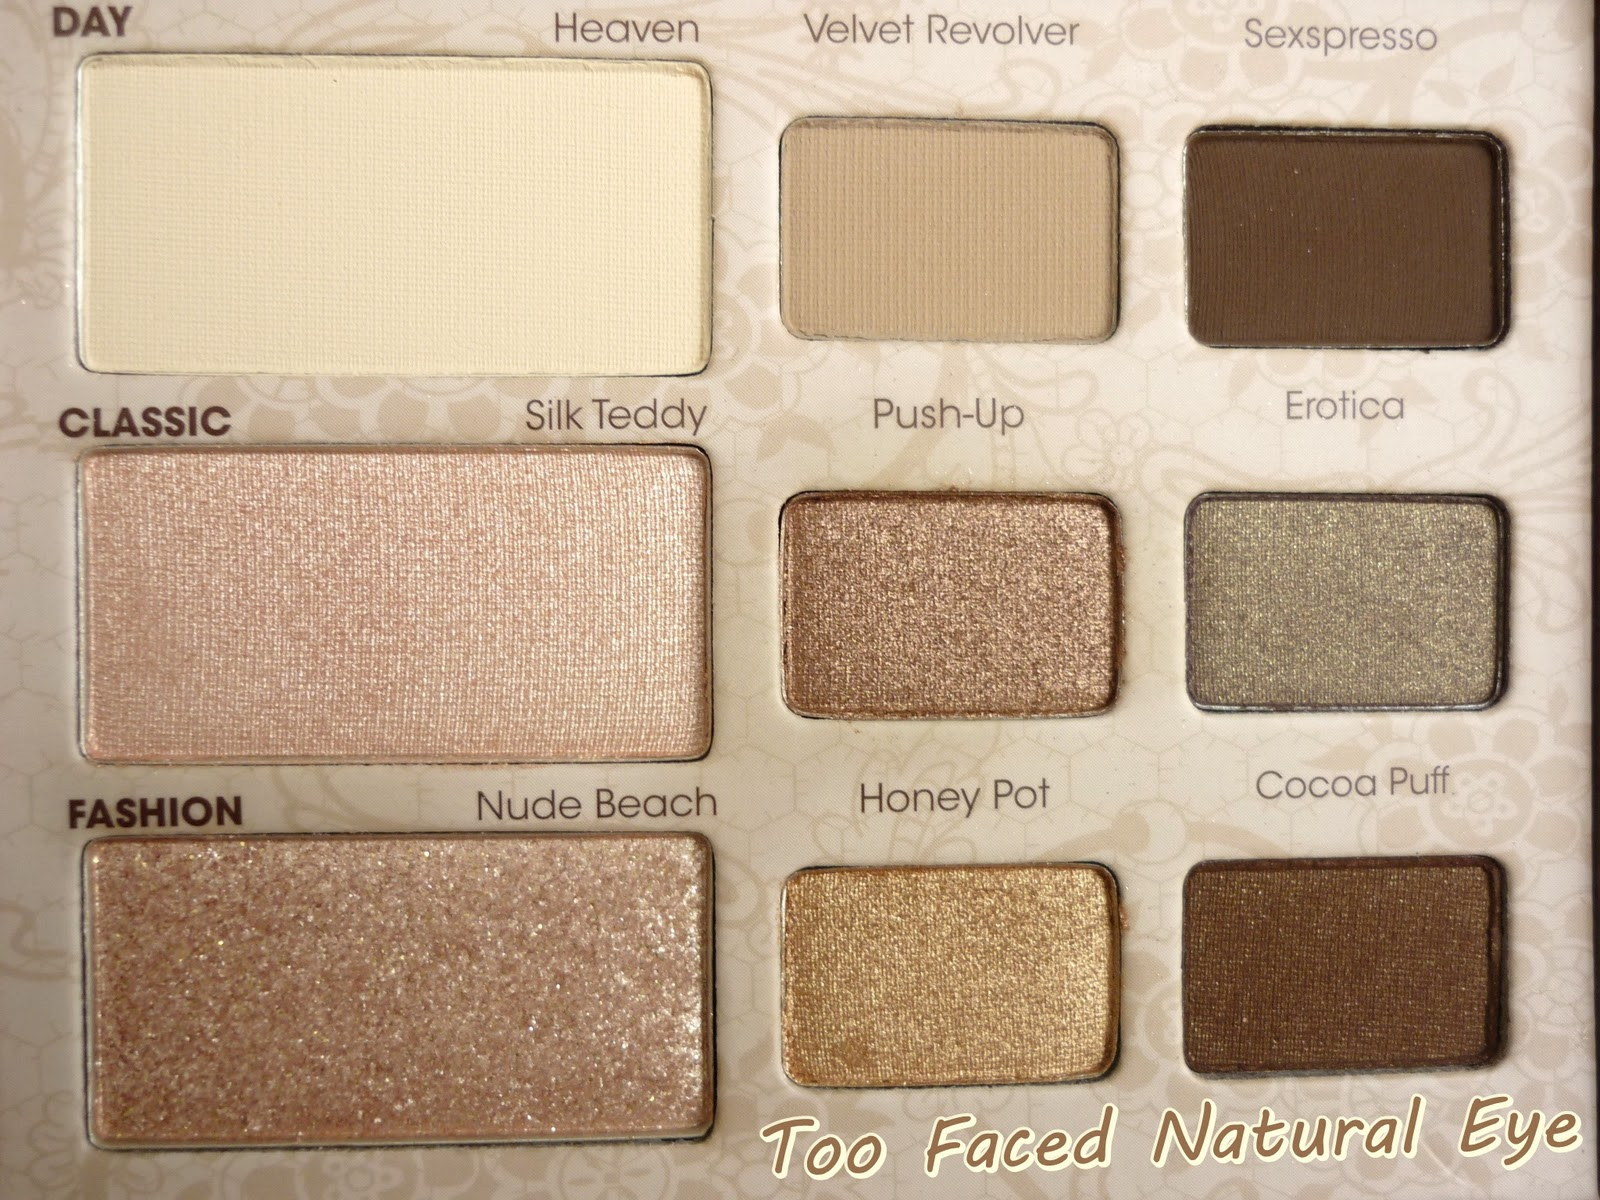 Maquillage des yeux - Page 3 Too-faced-natural-eye-palette